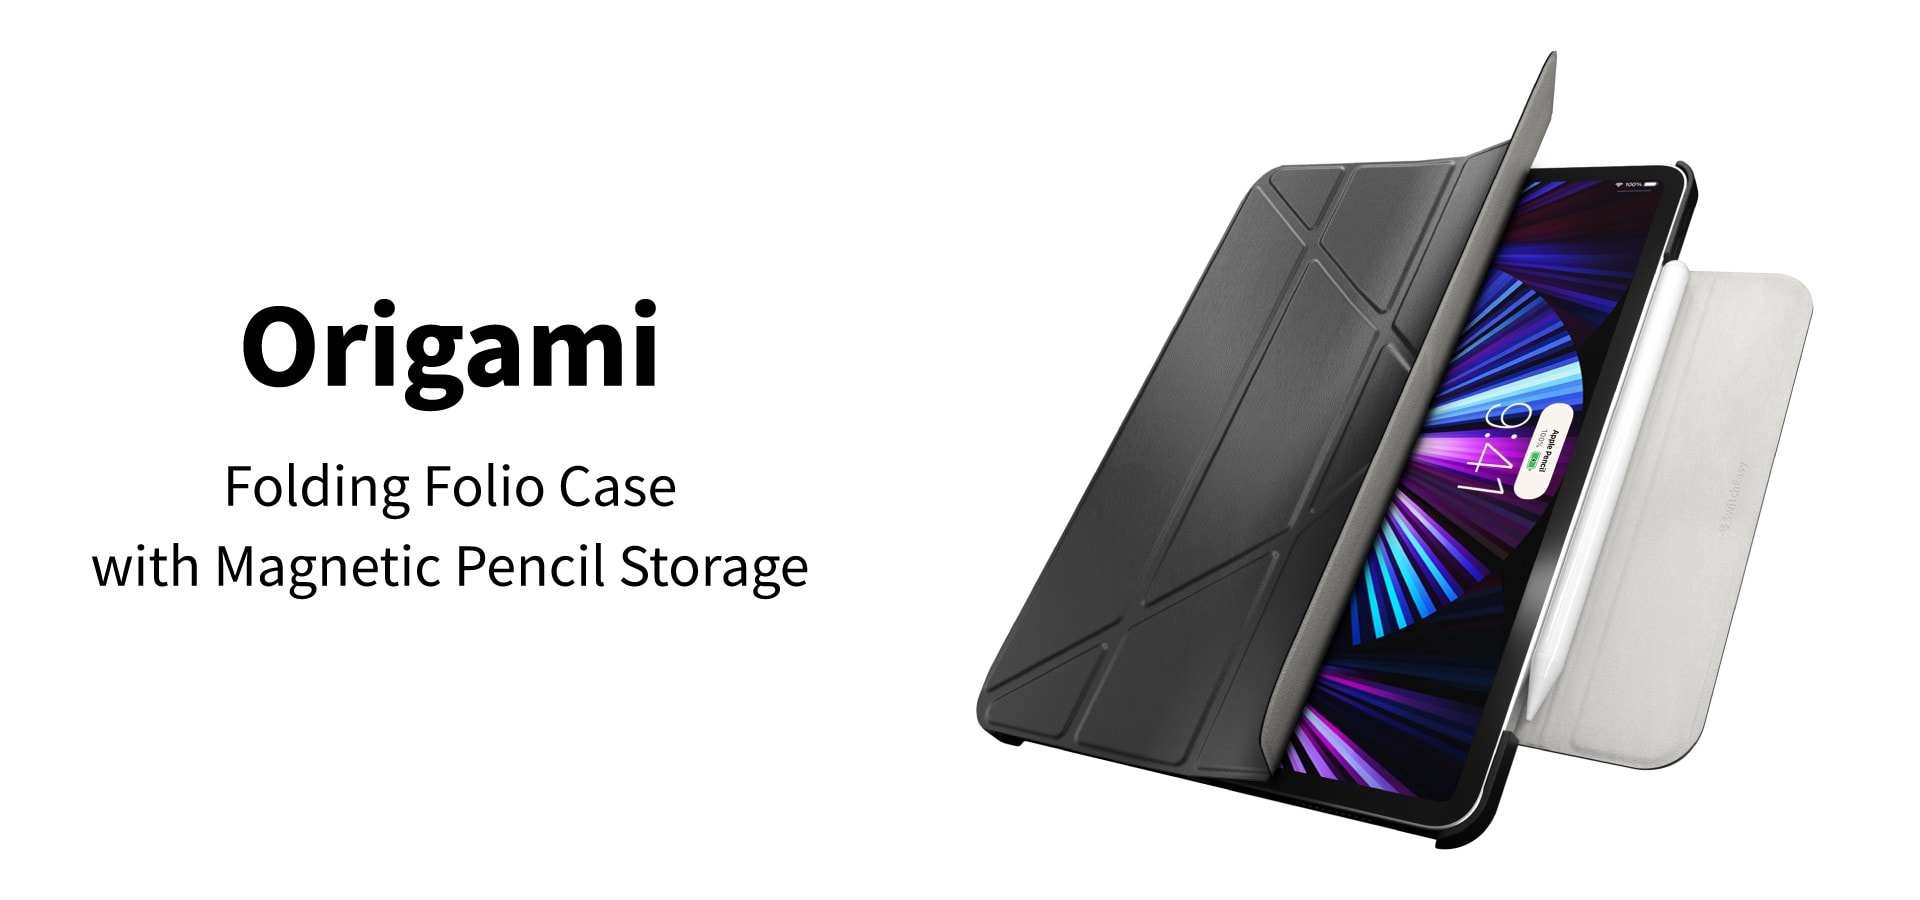 Origami Protective Case giveaway: This unique iPad case folds into a convenient stand